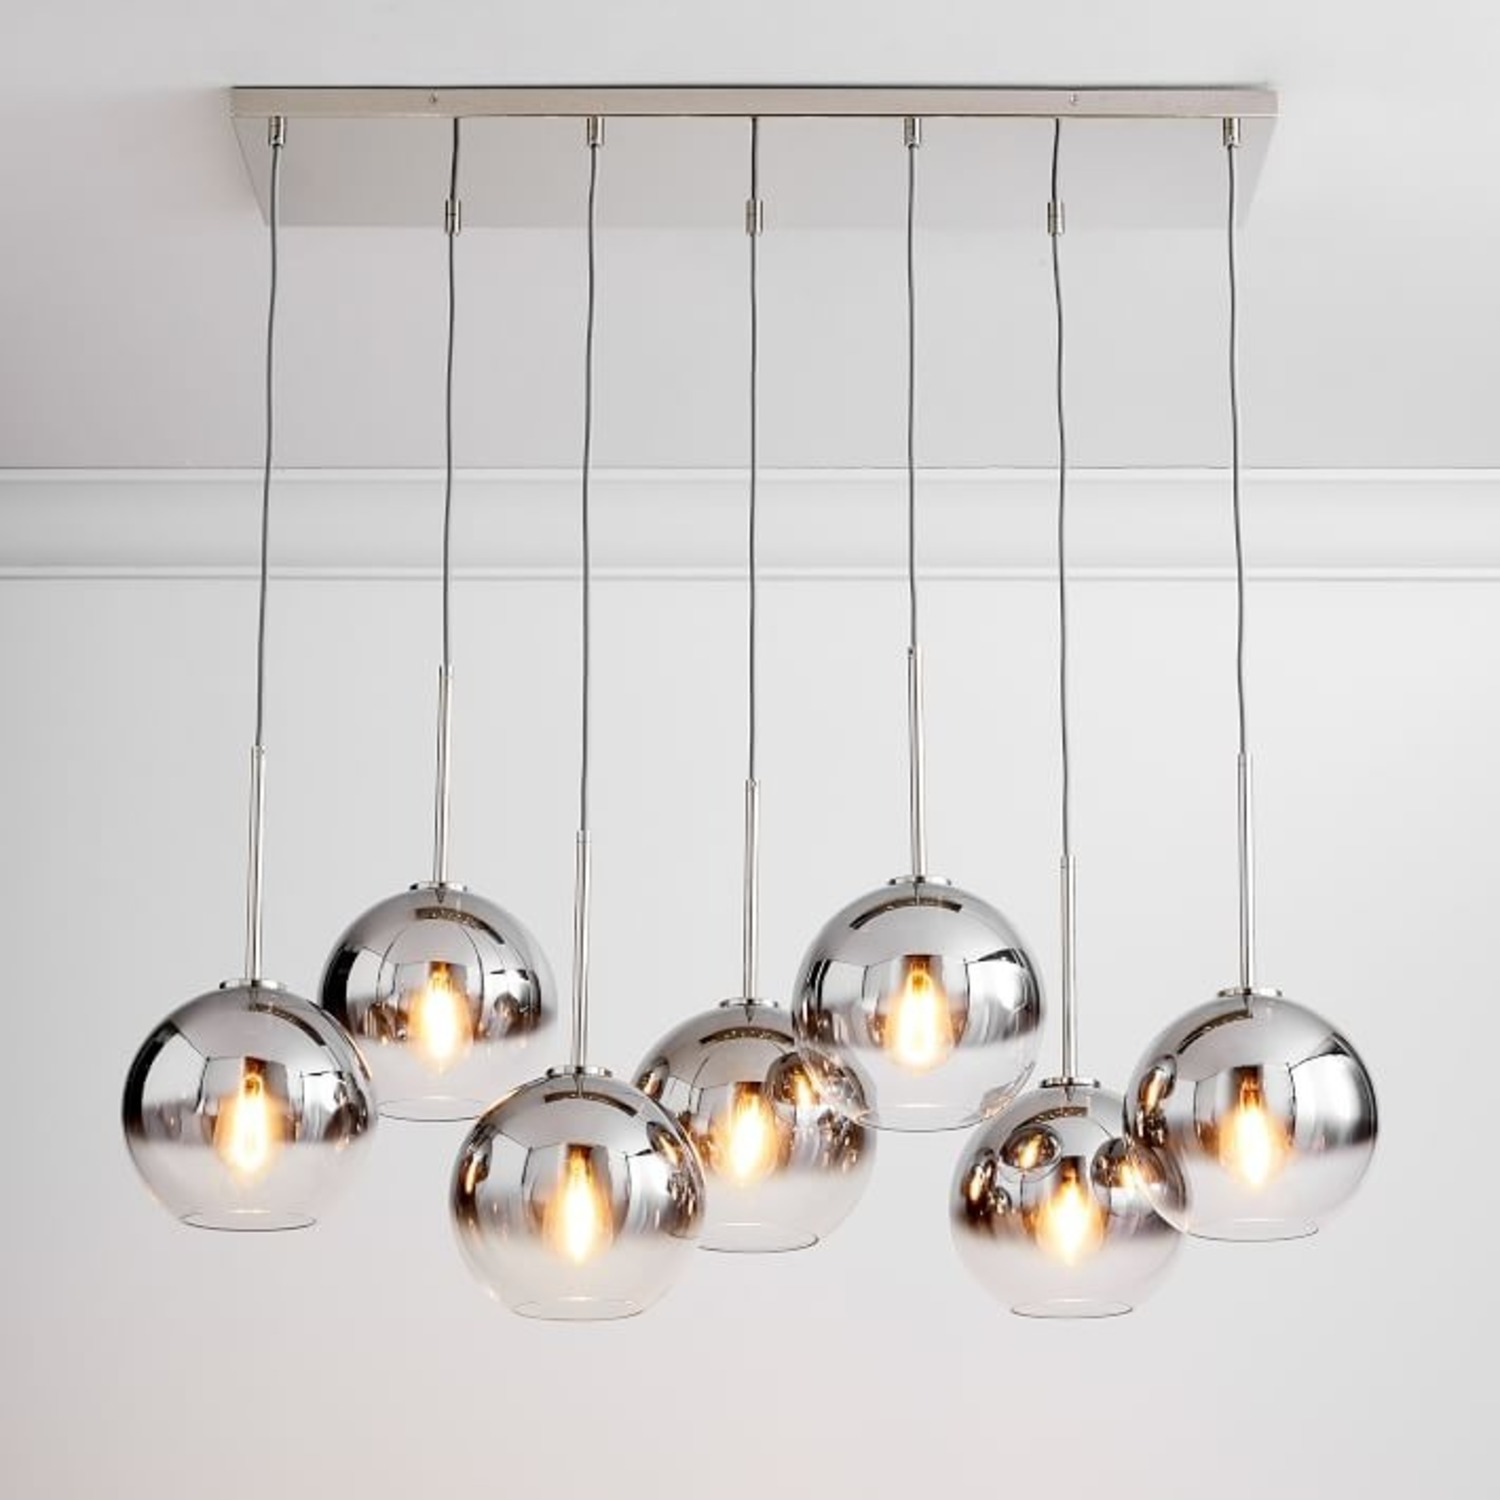 West Elm Sculptural 7-Light Chandelier - image-3